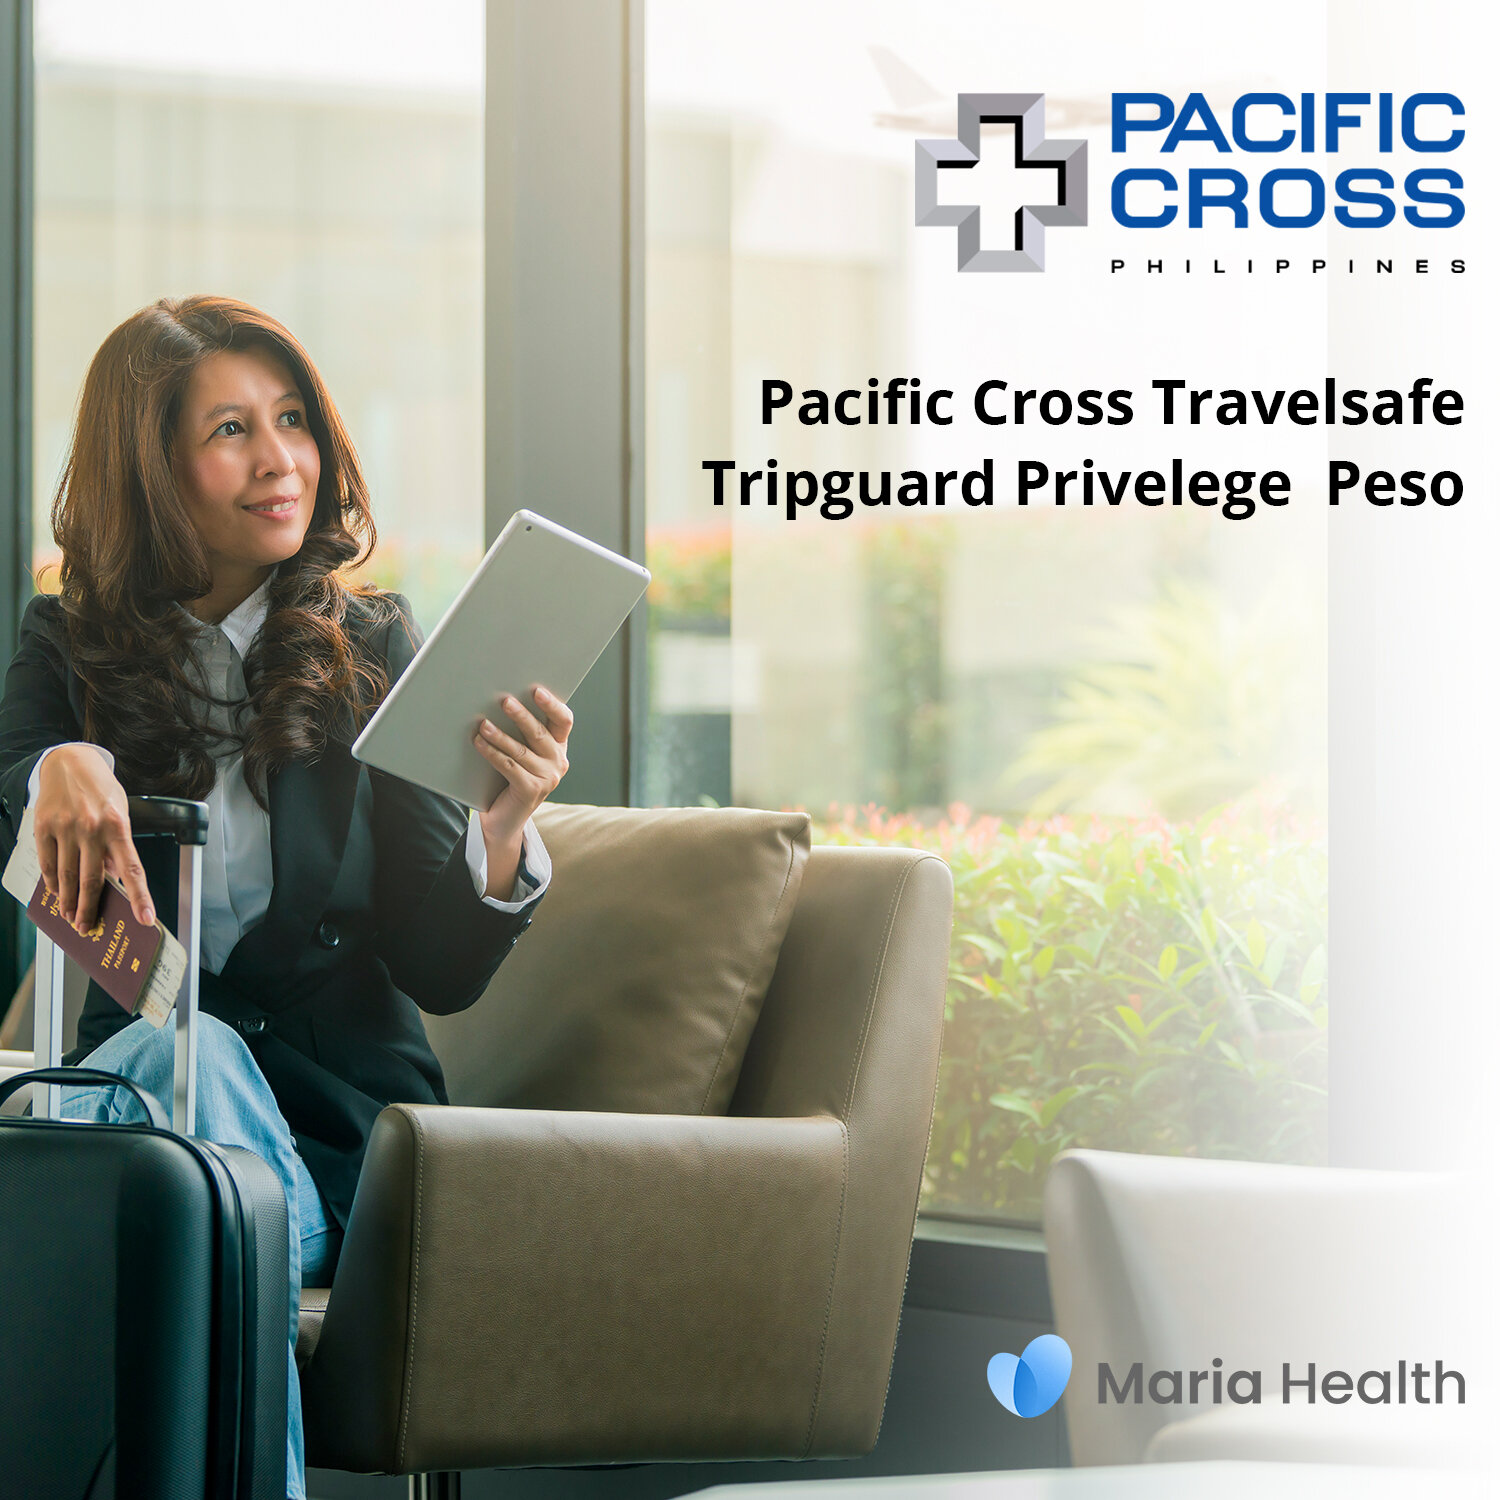 Pacific Cross Travelsafe Tripguard Privilege Peso    ₱573 one-time payment   One-time use travel insurance that covers up to ₱2,500,000 medical treatment.